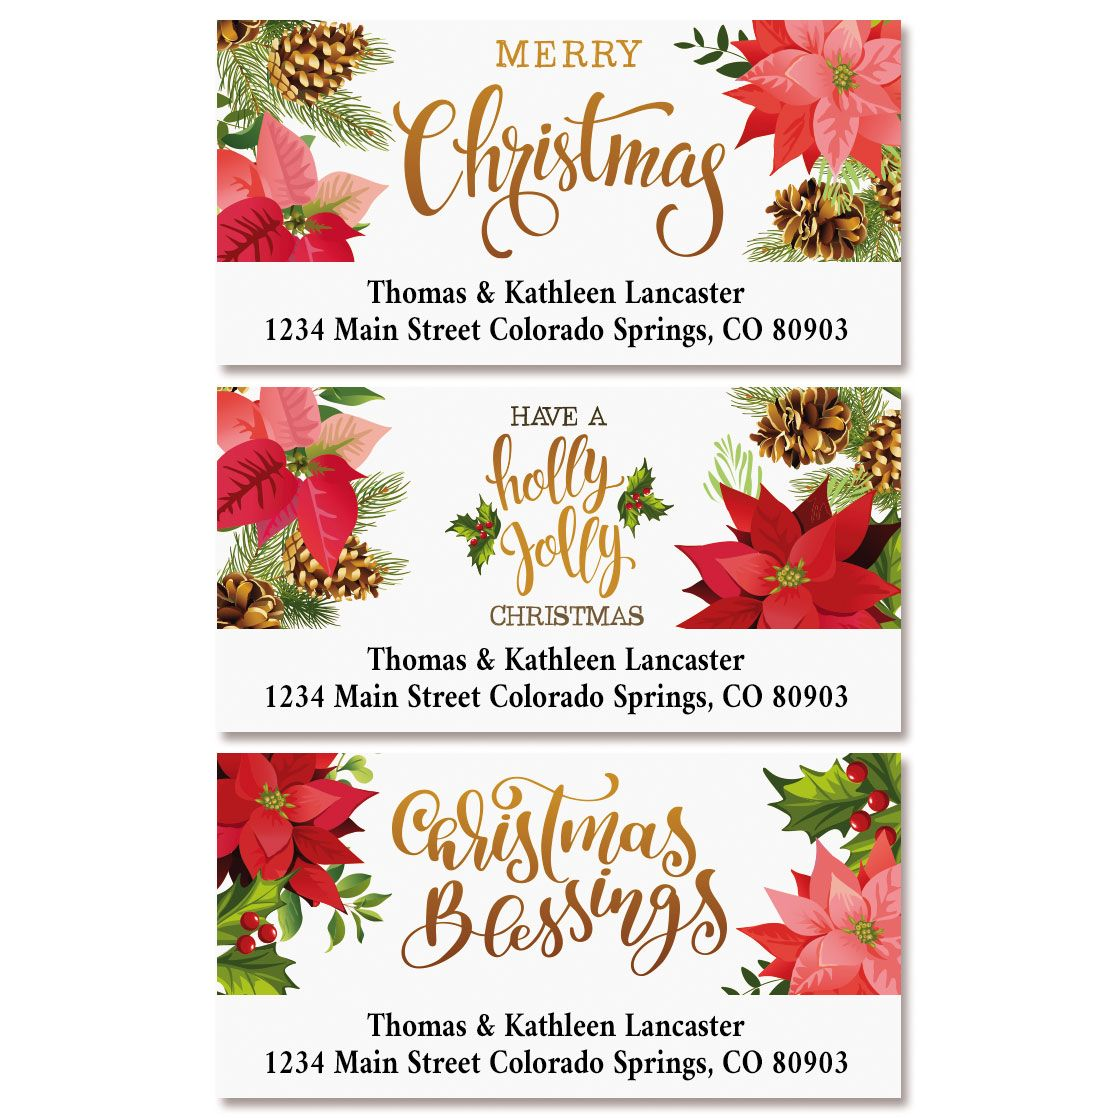 Poinsettia Greetings Deluxe Return Address Labels (3 Designs)